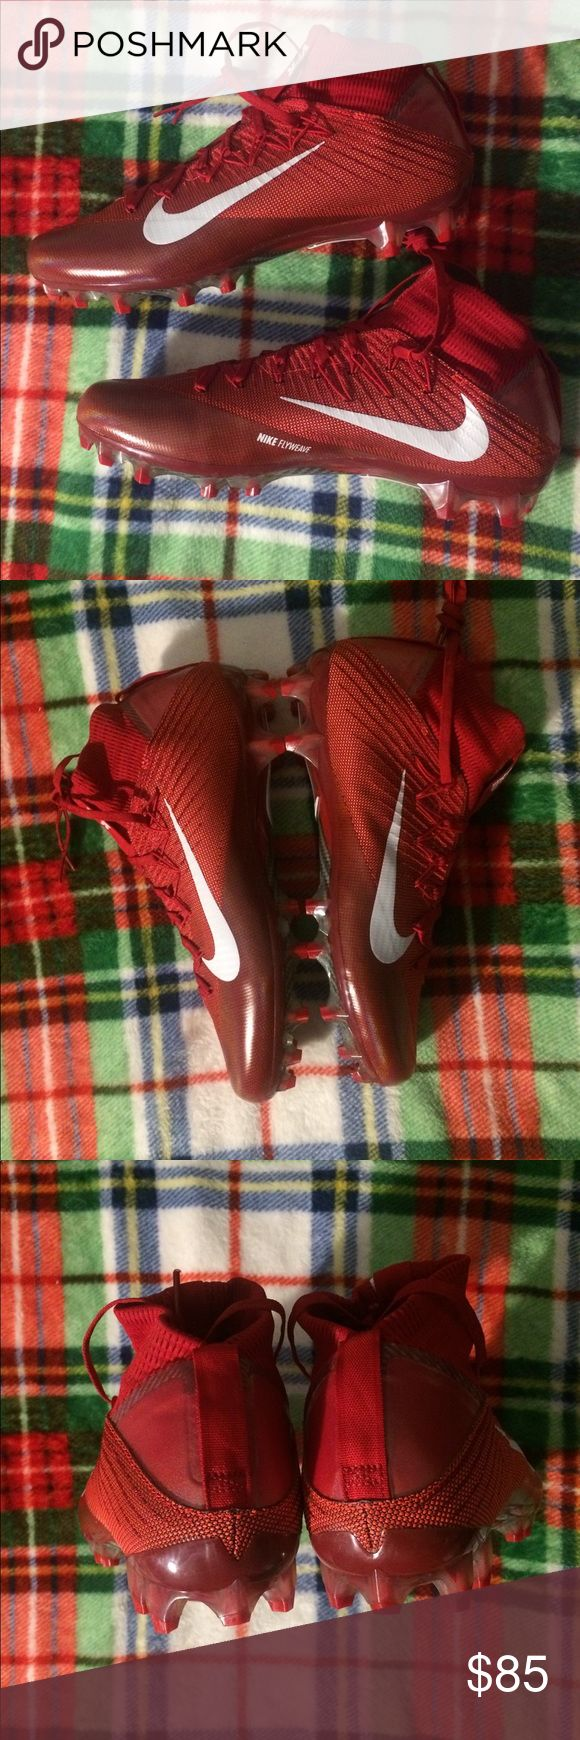 Nike Vapor Untouchable 2 Football Cleats Brand new, never worn. Super high quality football cleats. Men's size 12.5. Great price for a rare size, and a super cool colorway to boot. Nike Shoes Athletic Shoes